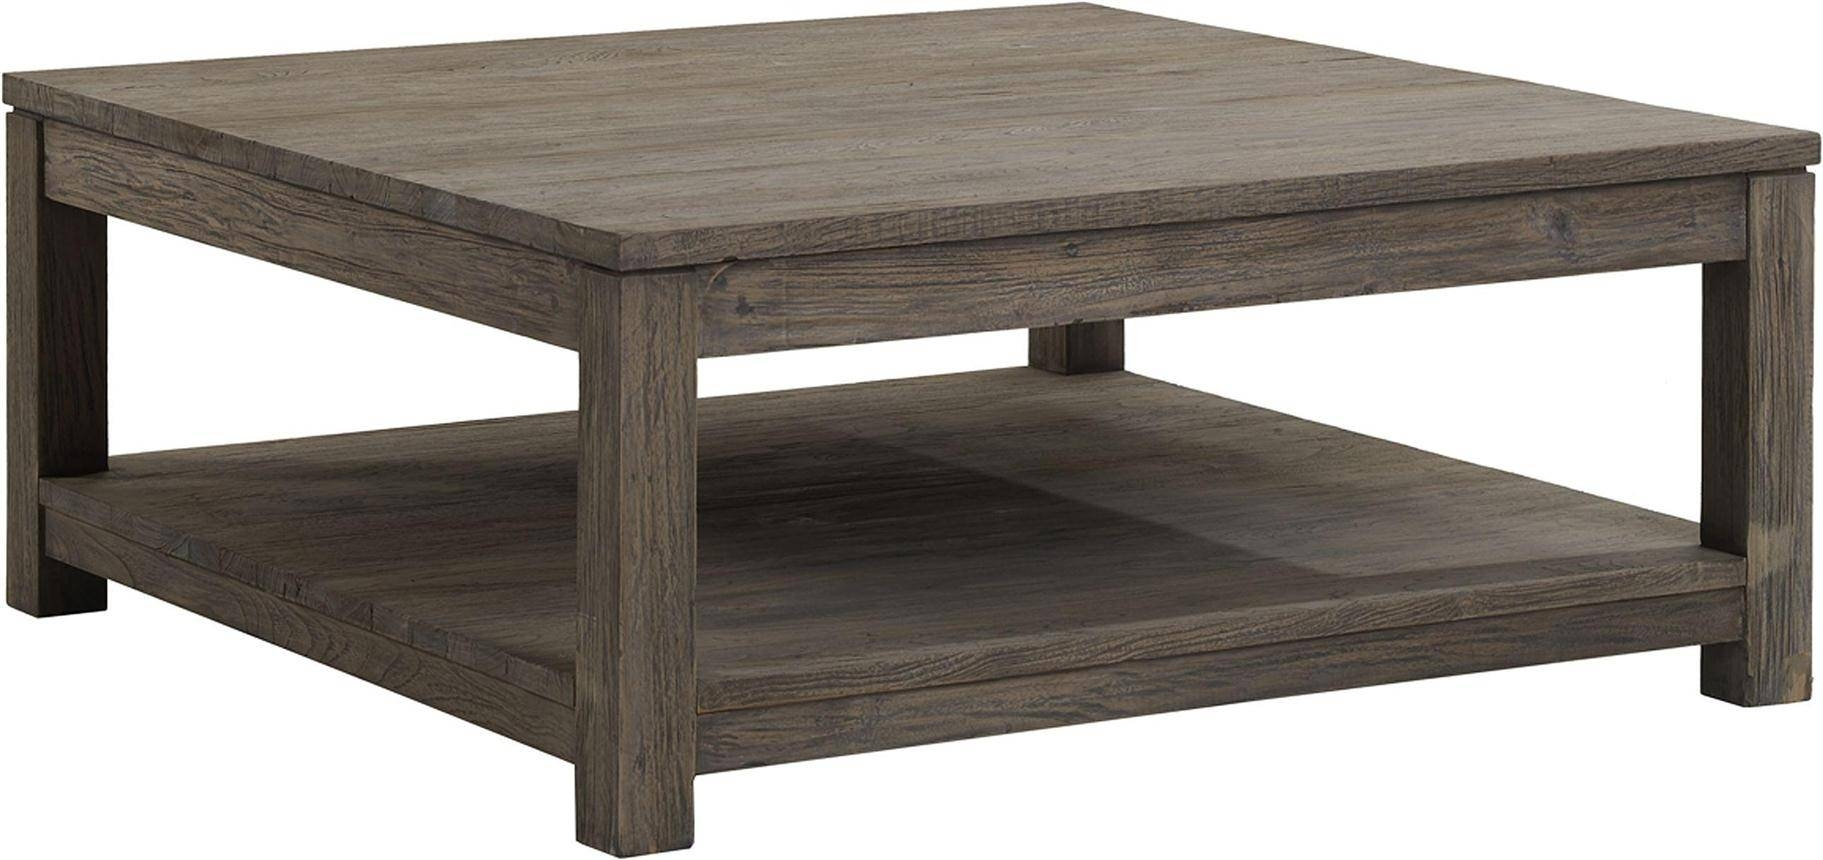 Oversized Square Coffee Tables : Oversized Coffee Table In Tuffed Pertaining To Square Coffee Tables (Photo 4 of 30)